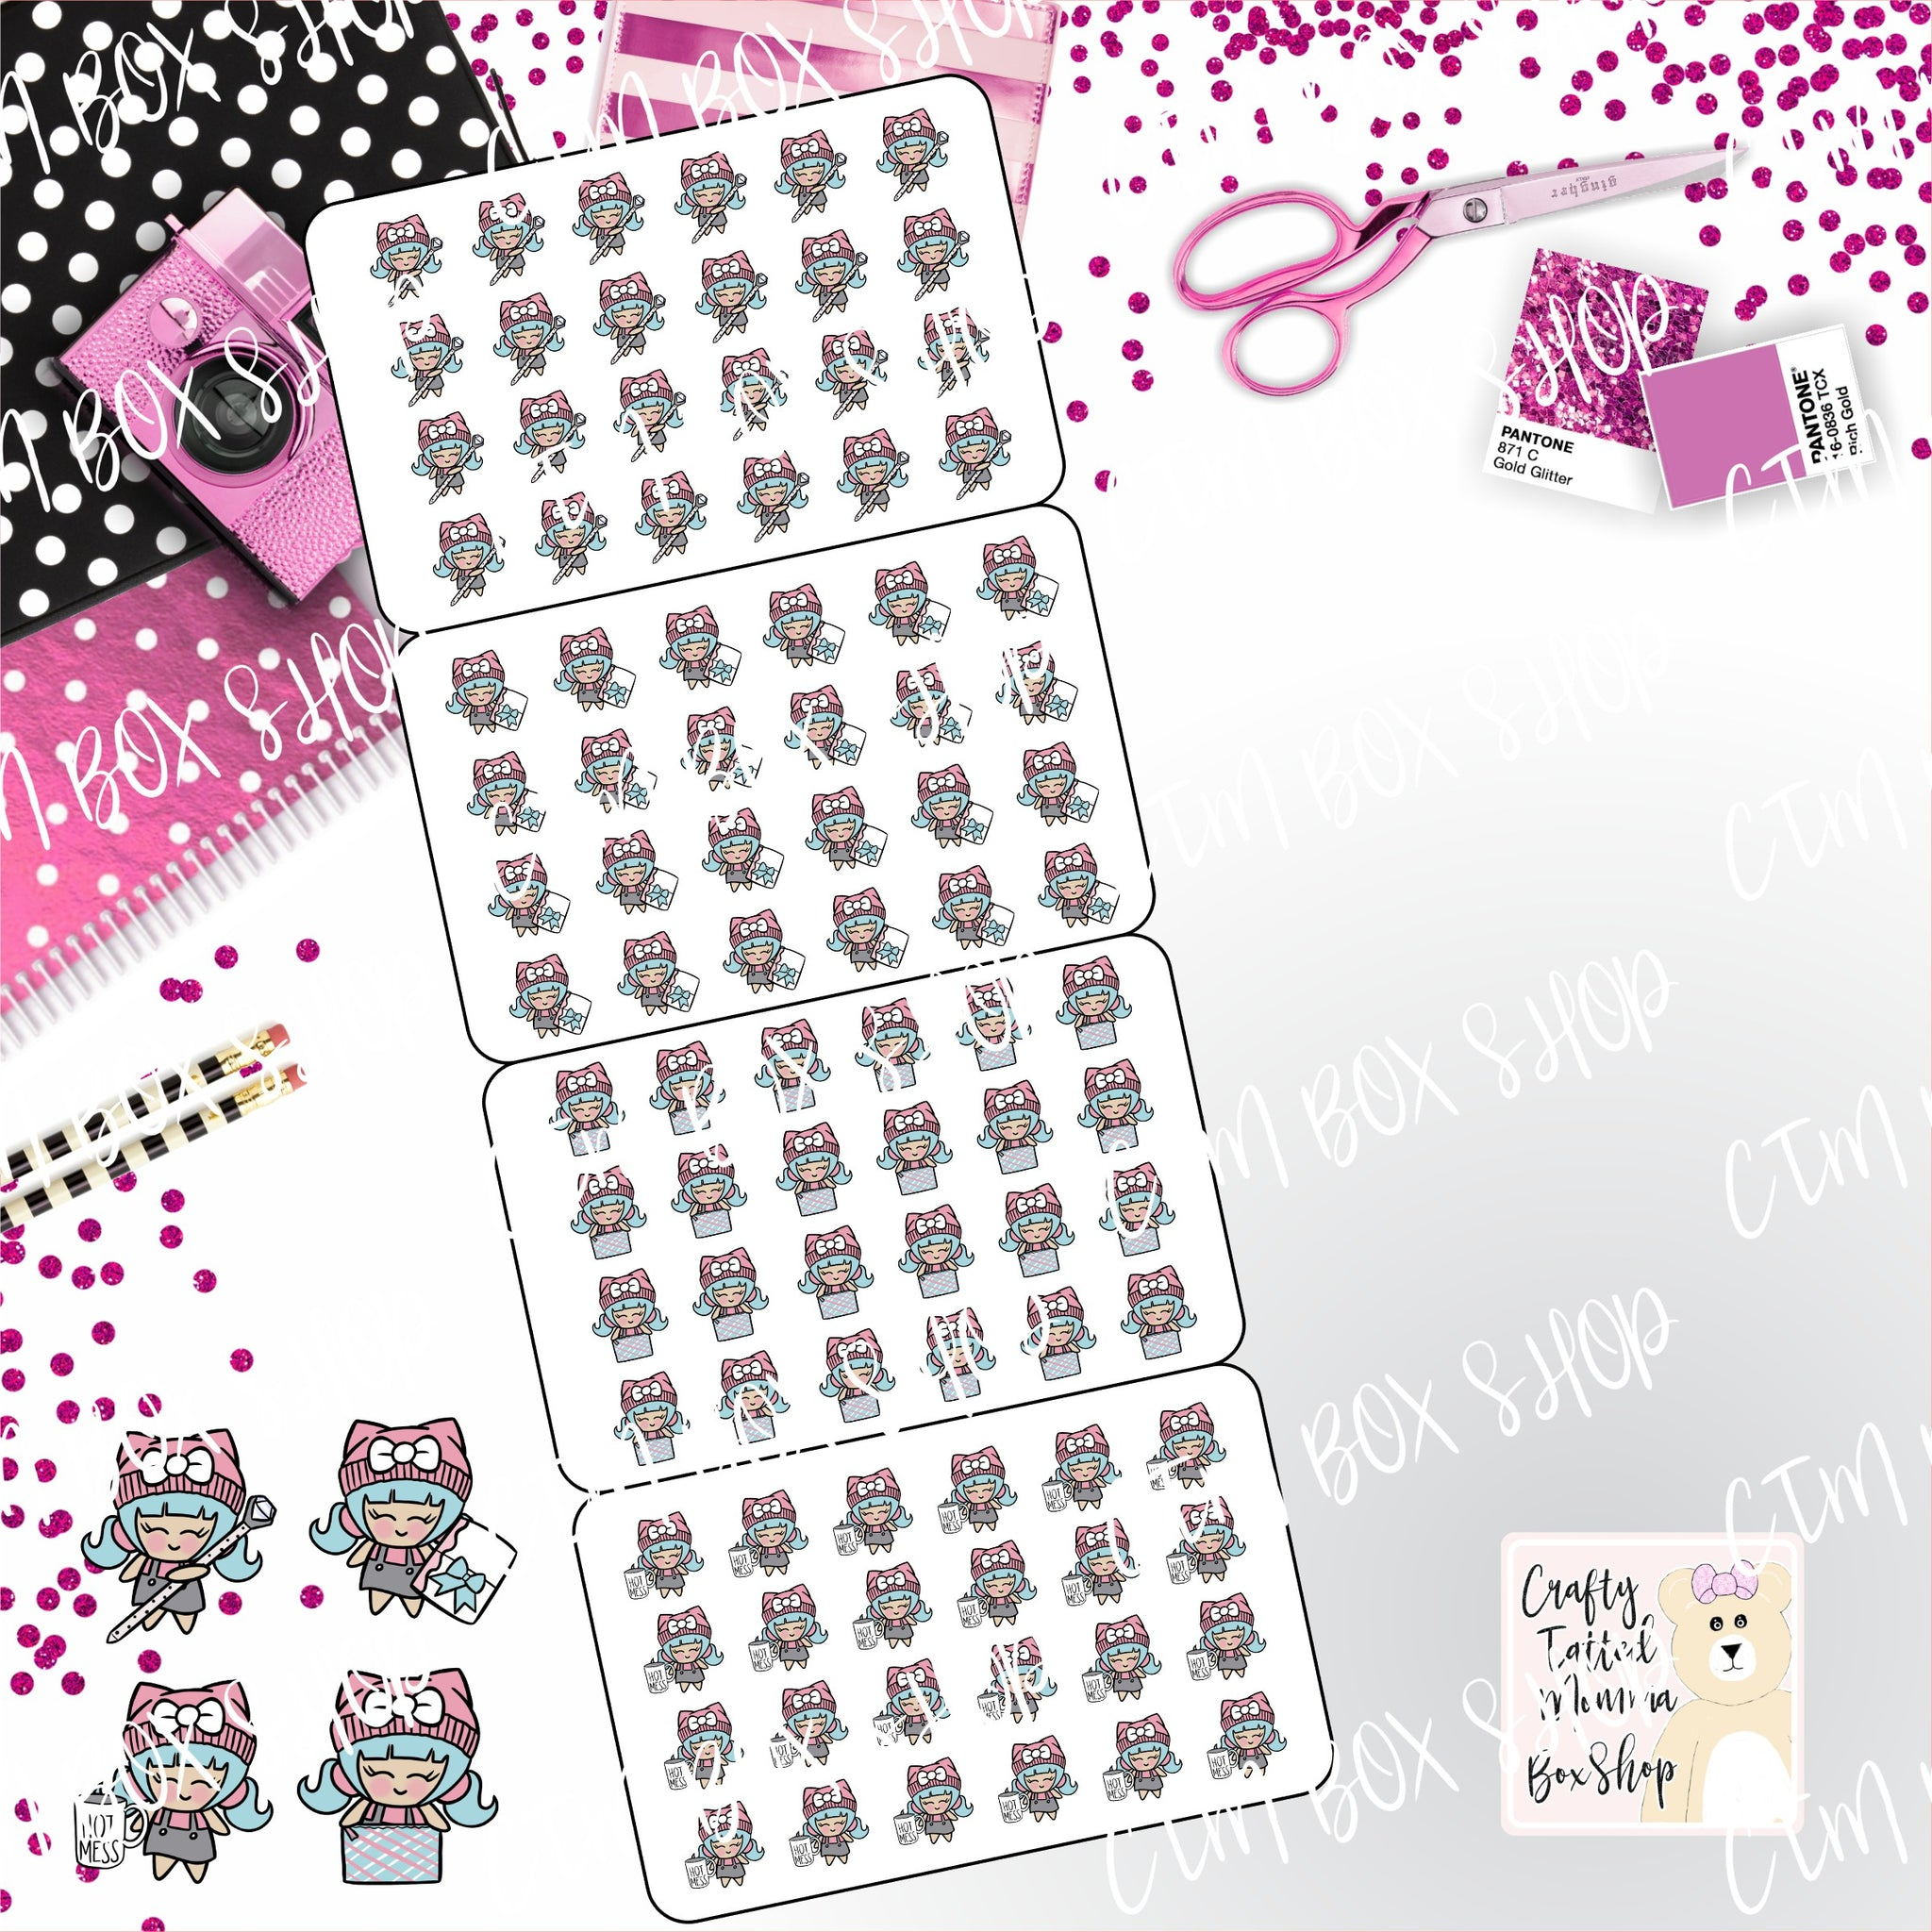 Planner Girl Set 2 Fold up Stickers   Character Stickers   Planner Stickers   Functional Stickers   Folding Stickers   Deco Stickers